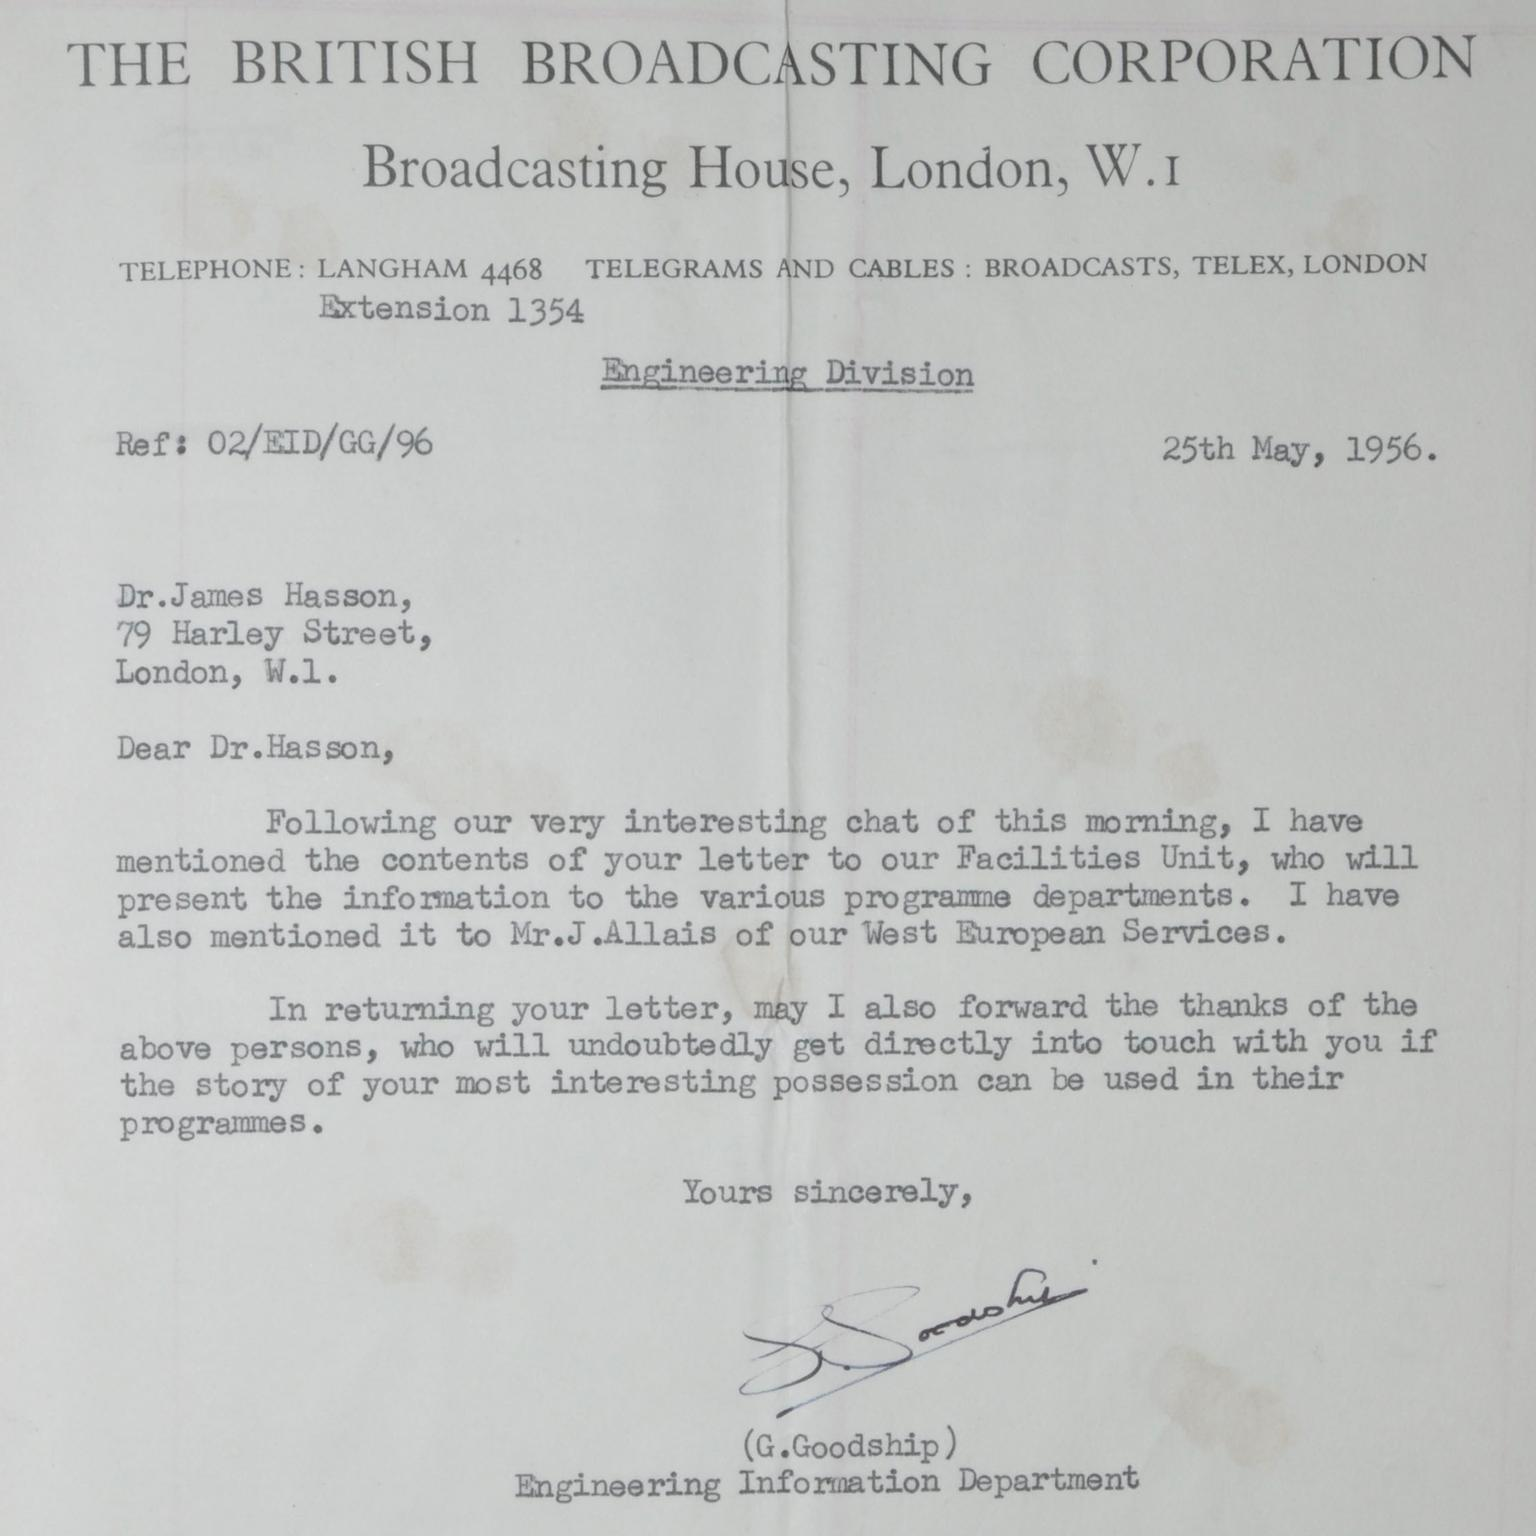 Letter from BBC regarding the Joan of Arc antique ring